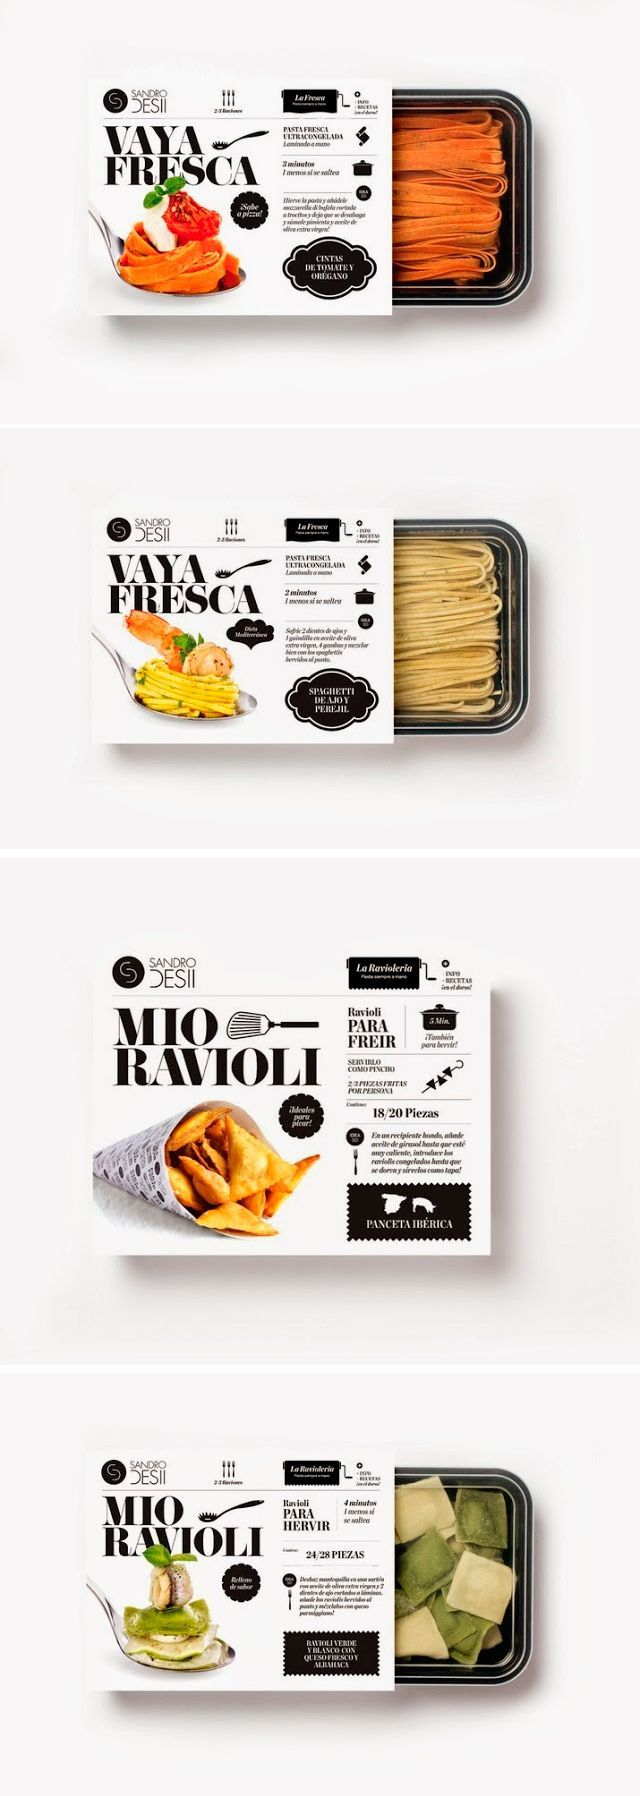 packaging / sandro desii - food